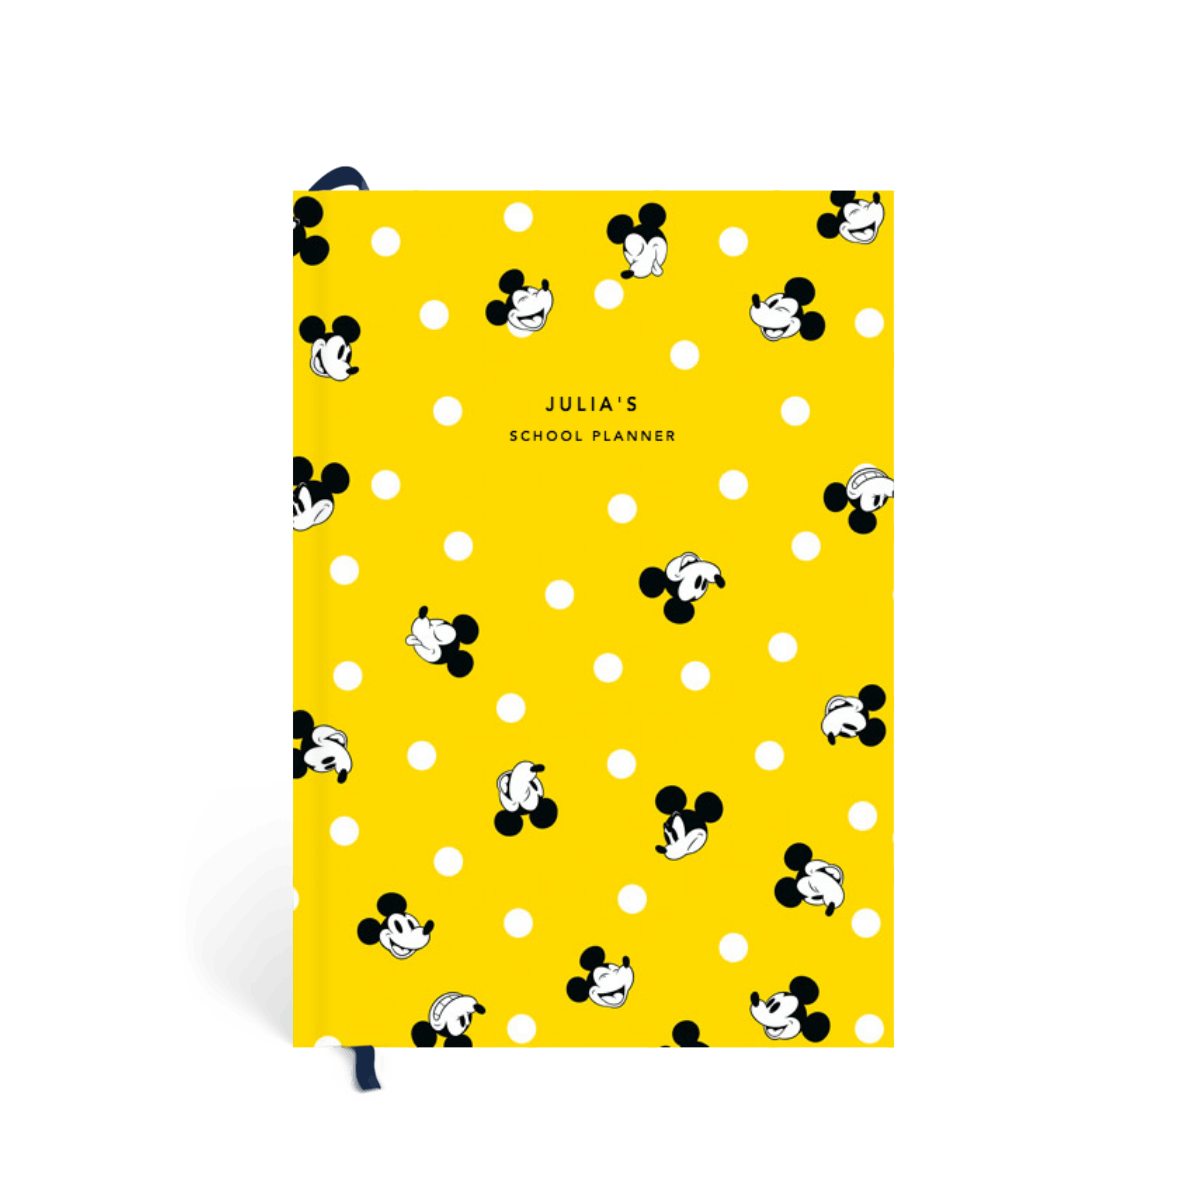 Https%3a%2f%2fwww.papier.com%2fproduct image%2f63984%2f36%2fmickey polka 15021 front 1548854316.png?ixlib=rb 1.1